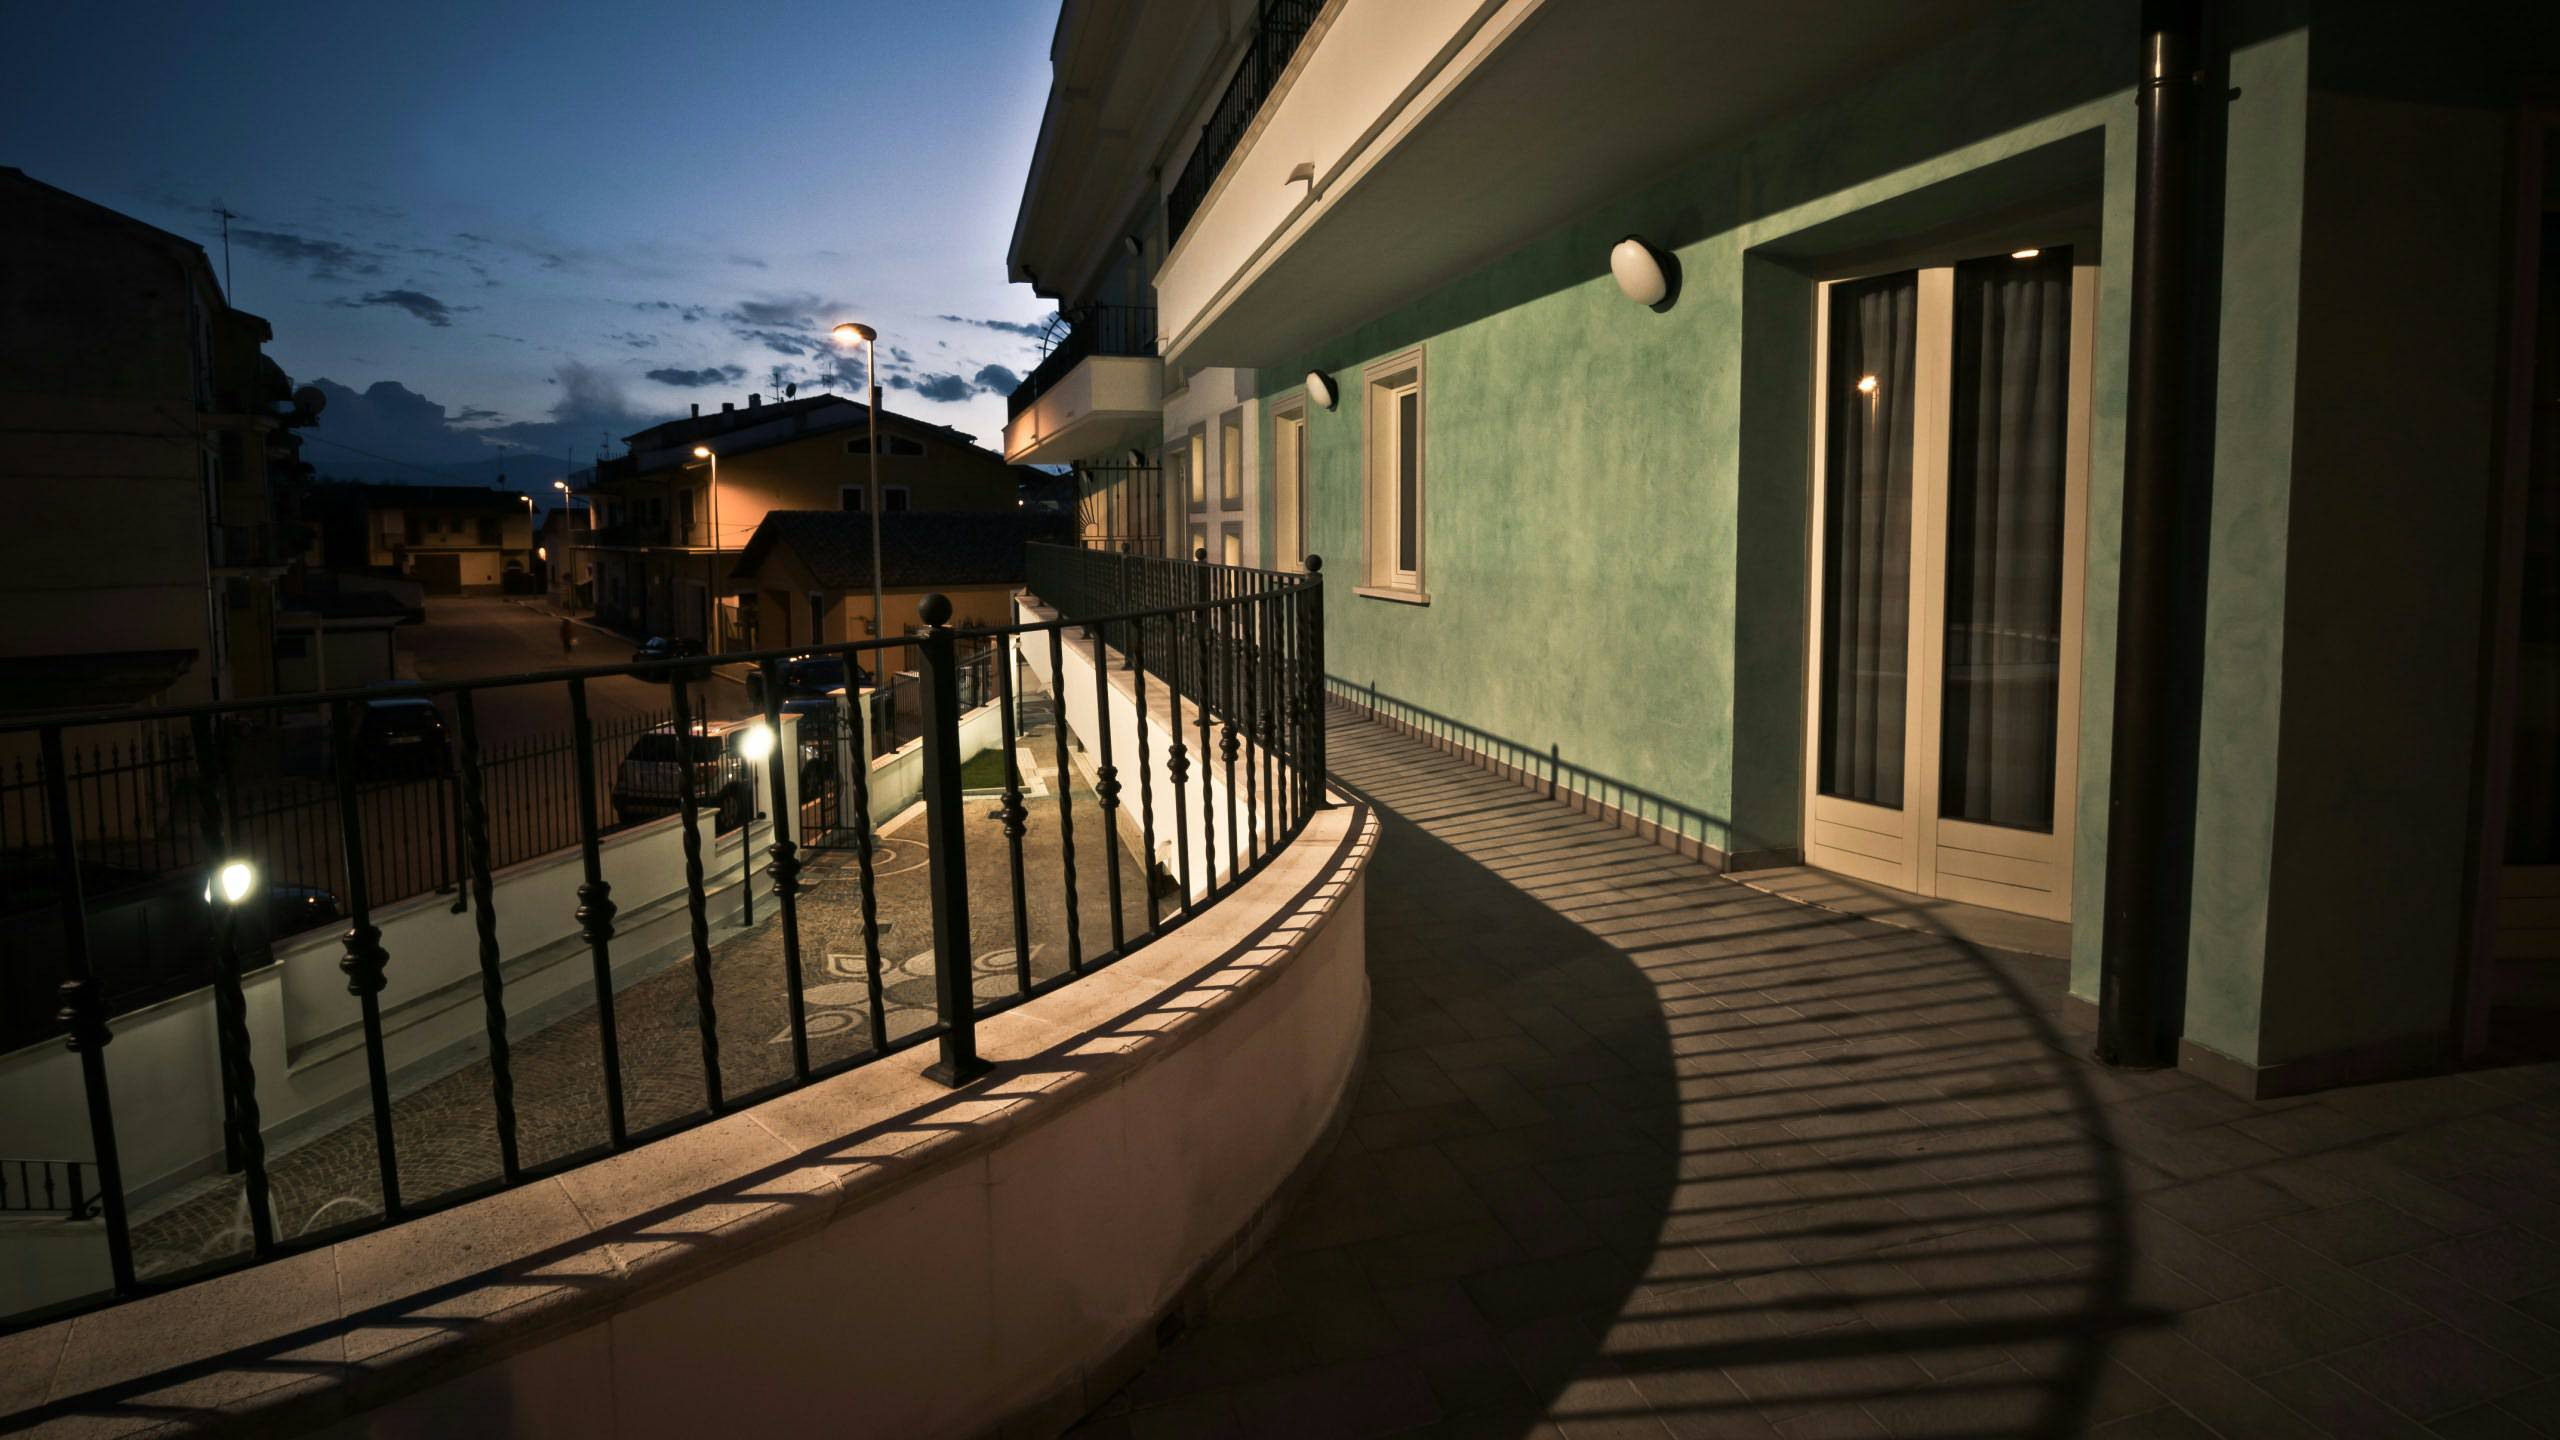 Hotel San Berardo - Official Site - Location